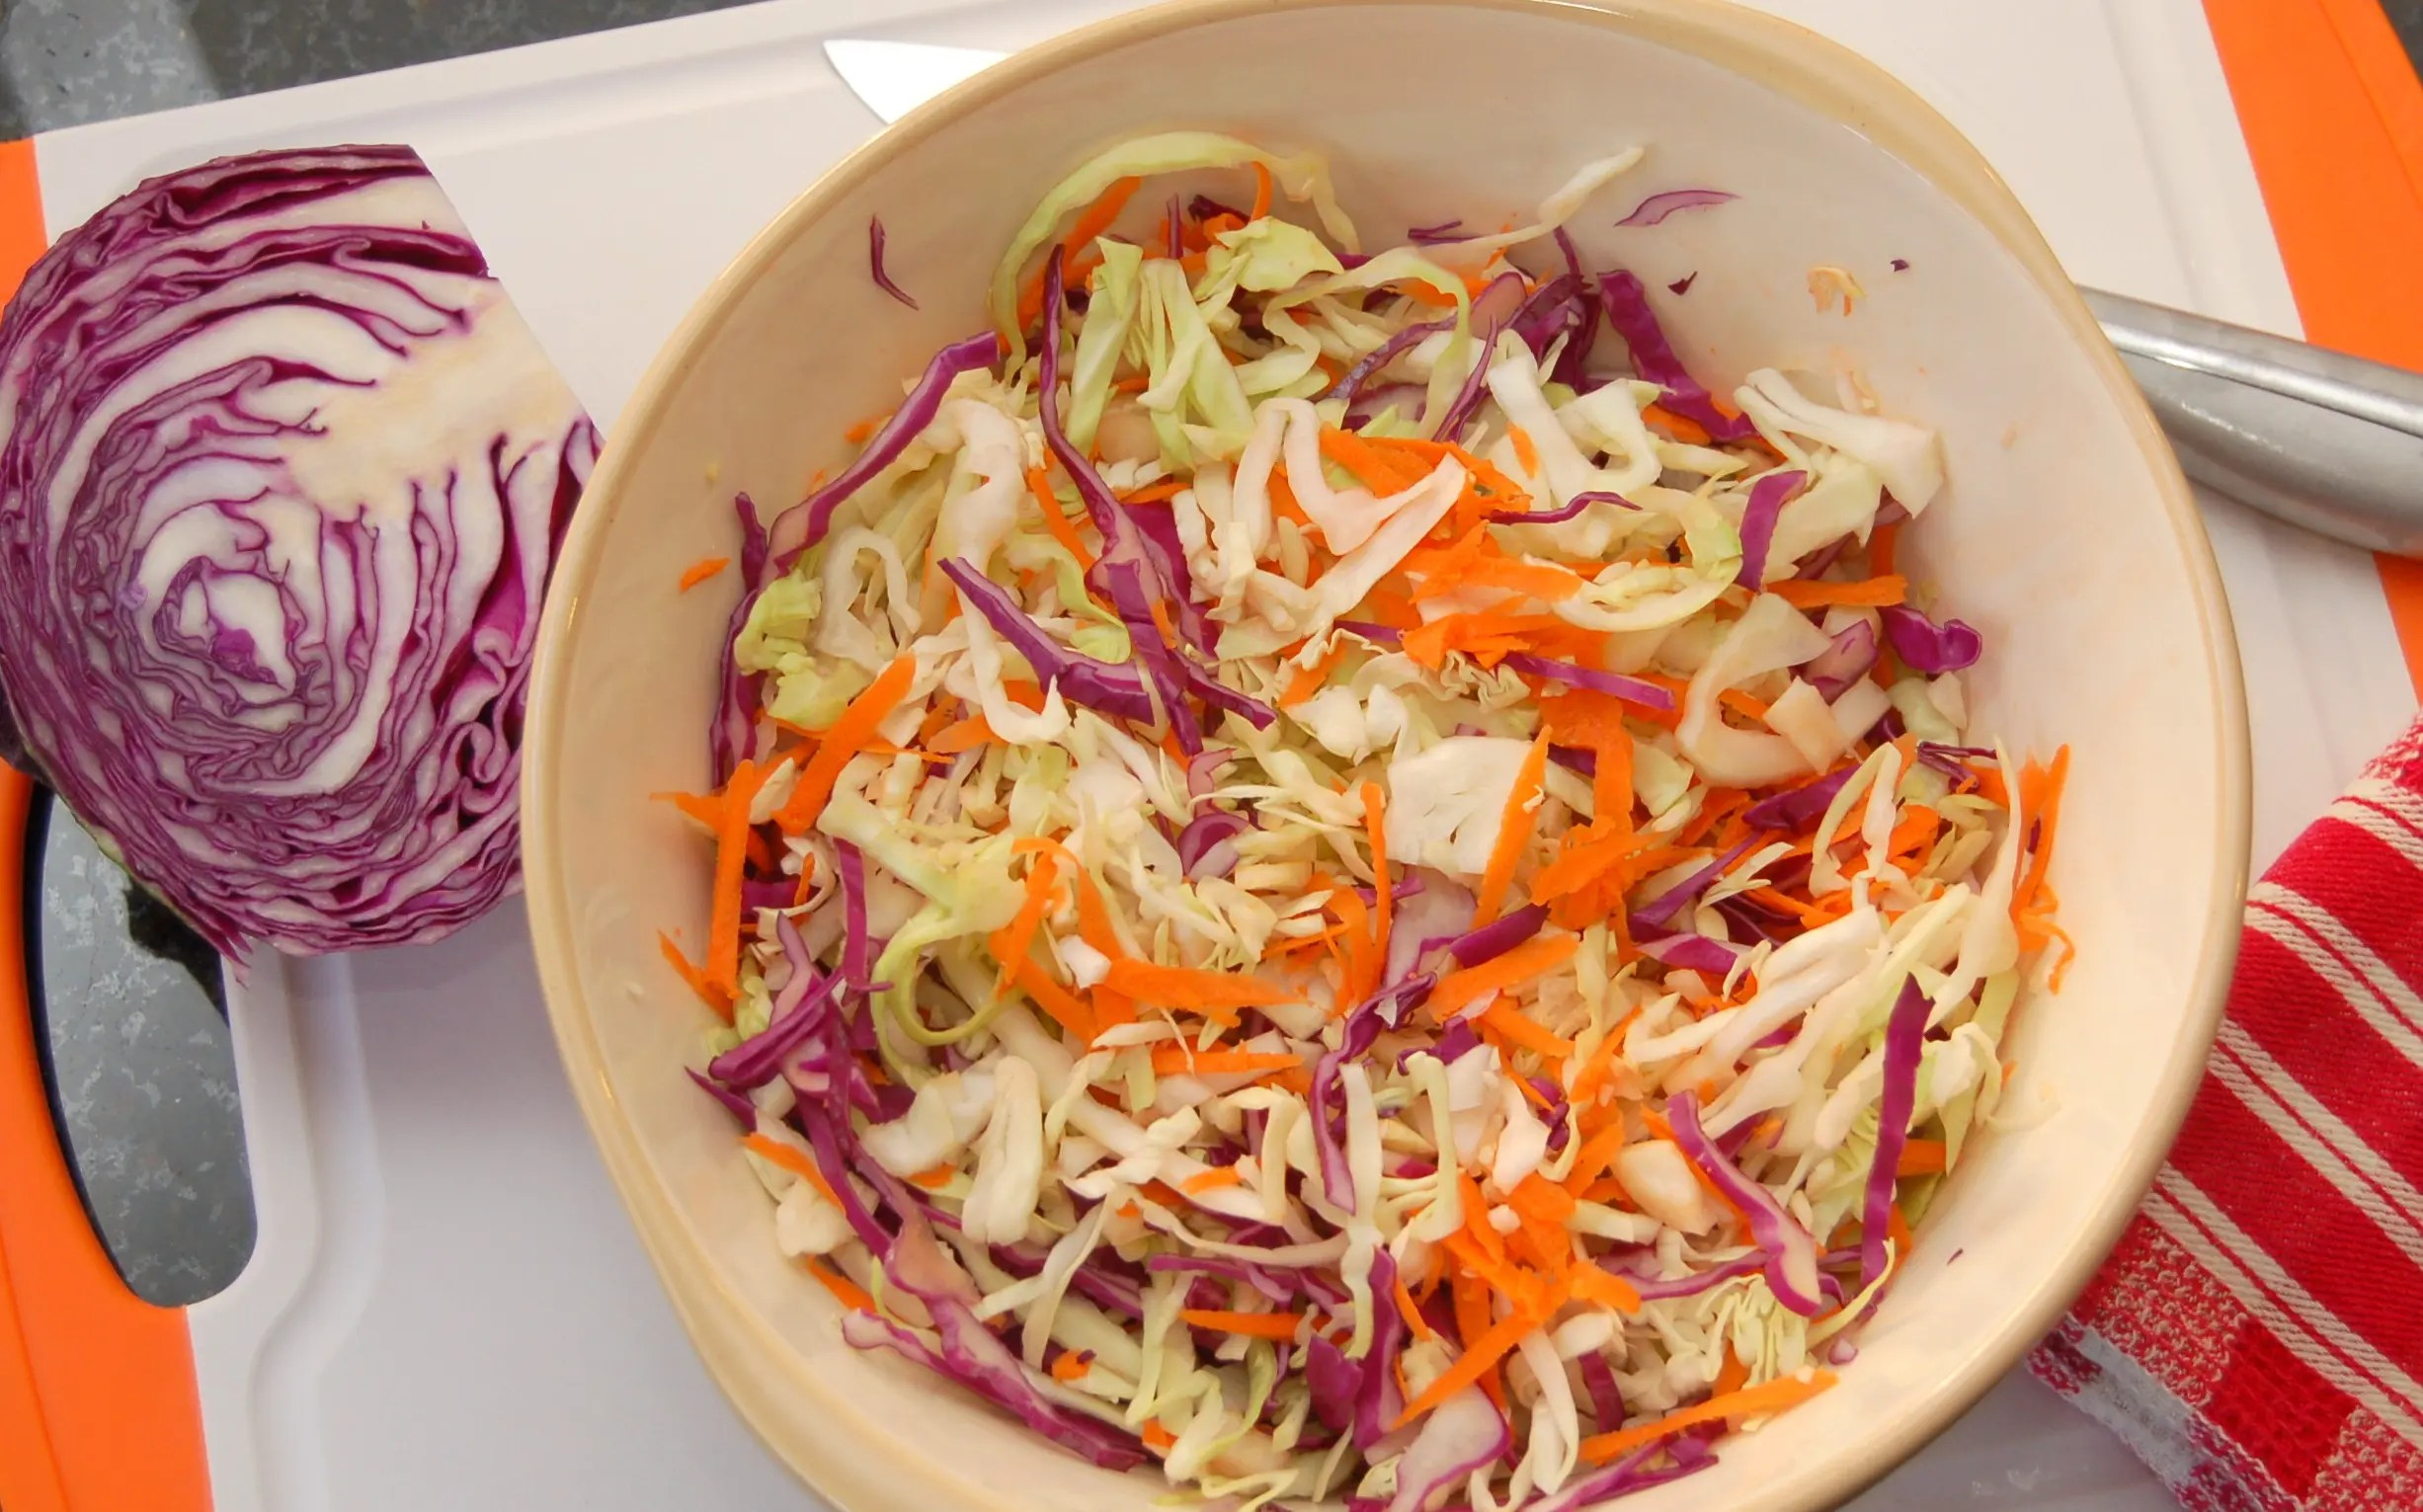 May 30, · 1/2 thinly sliced head of green cabbage. 1 cup of thinly sliced red cabbage. 2 whole shredded carrots. 3 thinly sliced green onions. 1/4 cup of apple cider vinegar. 1 tablespoon of grainy mustard. 1 tablespoon of honey or 1 teaspoon of sugar. 1/4 cup of olive oil/5(15).